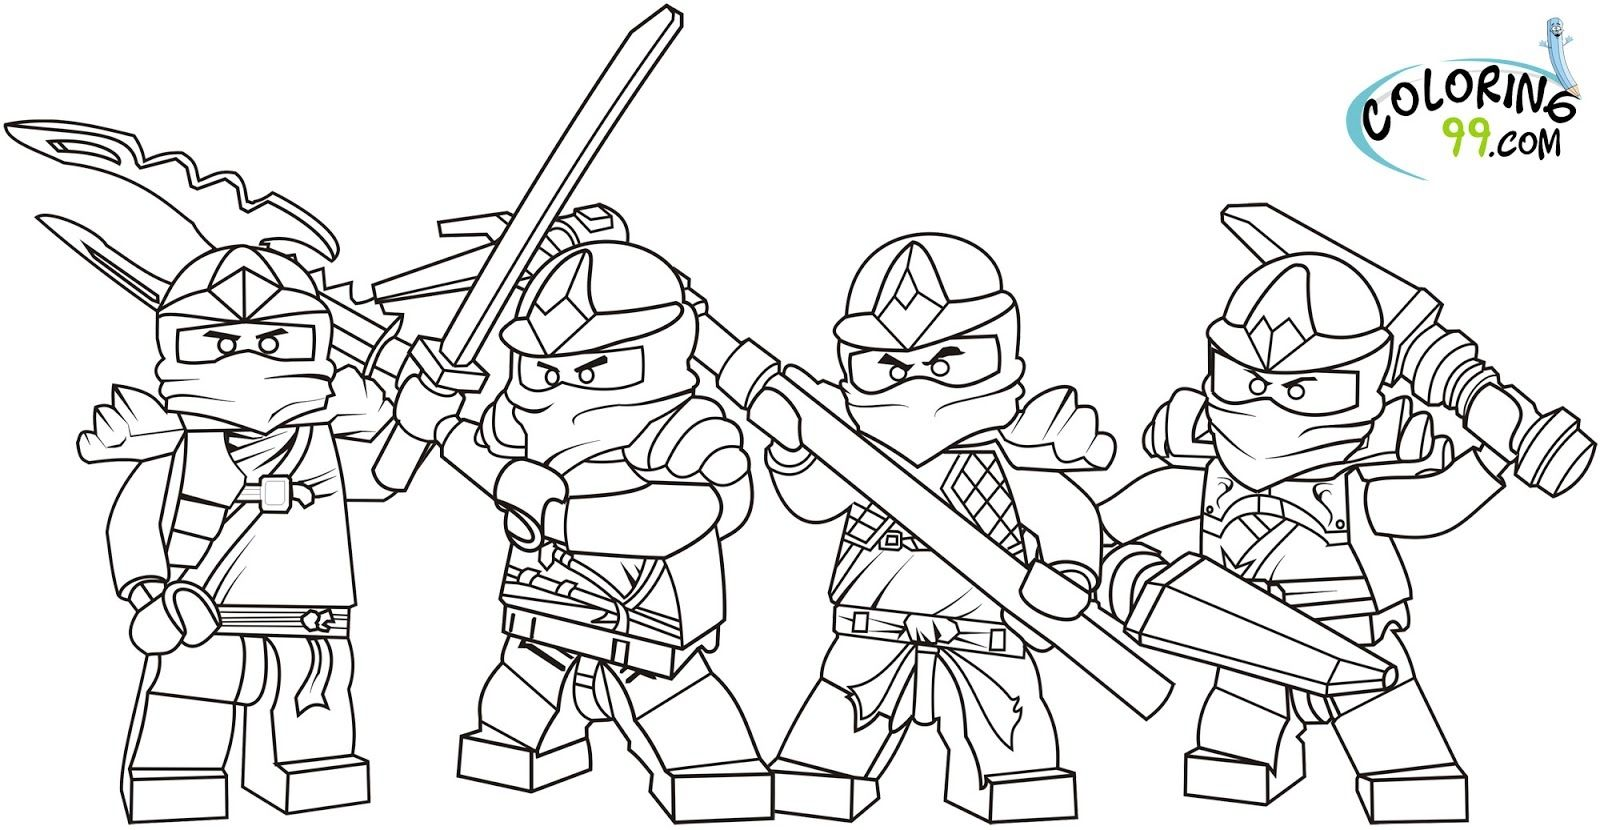 Download Incredible Ninja Coloring Pages Printable For Free Http Designkids Info Download Incredib Ninjago Coloring Pages Lego Coloring Pages Lego Coloring